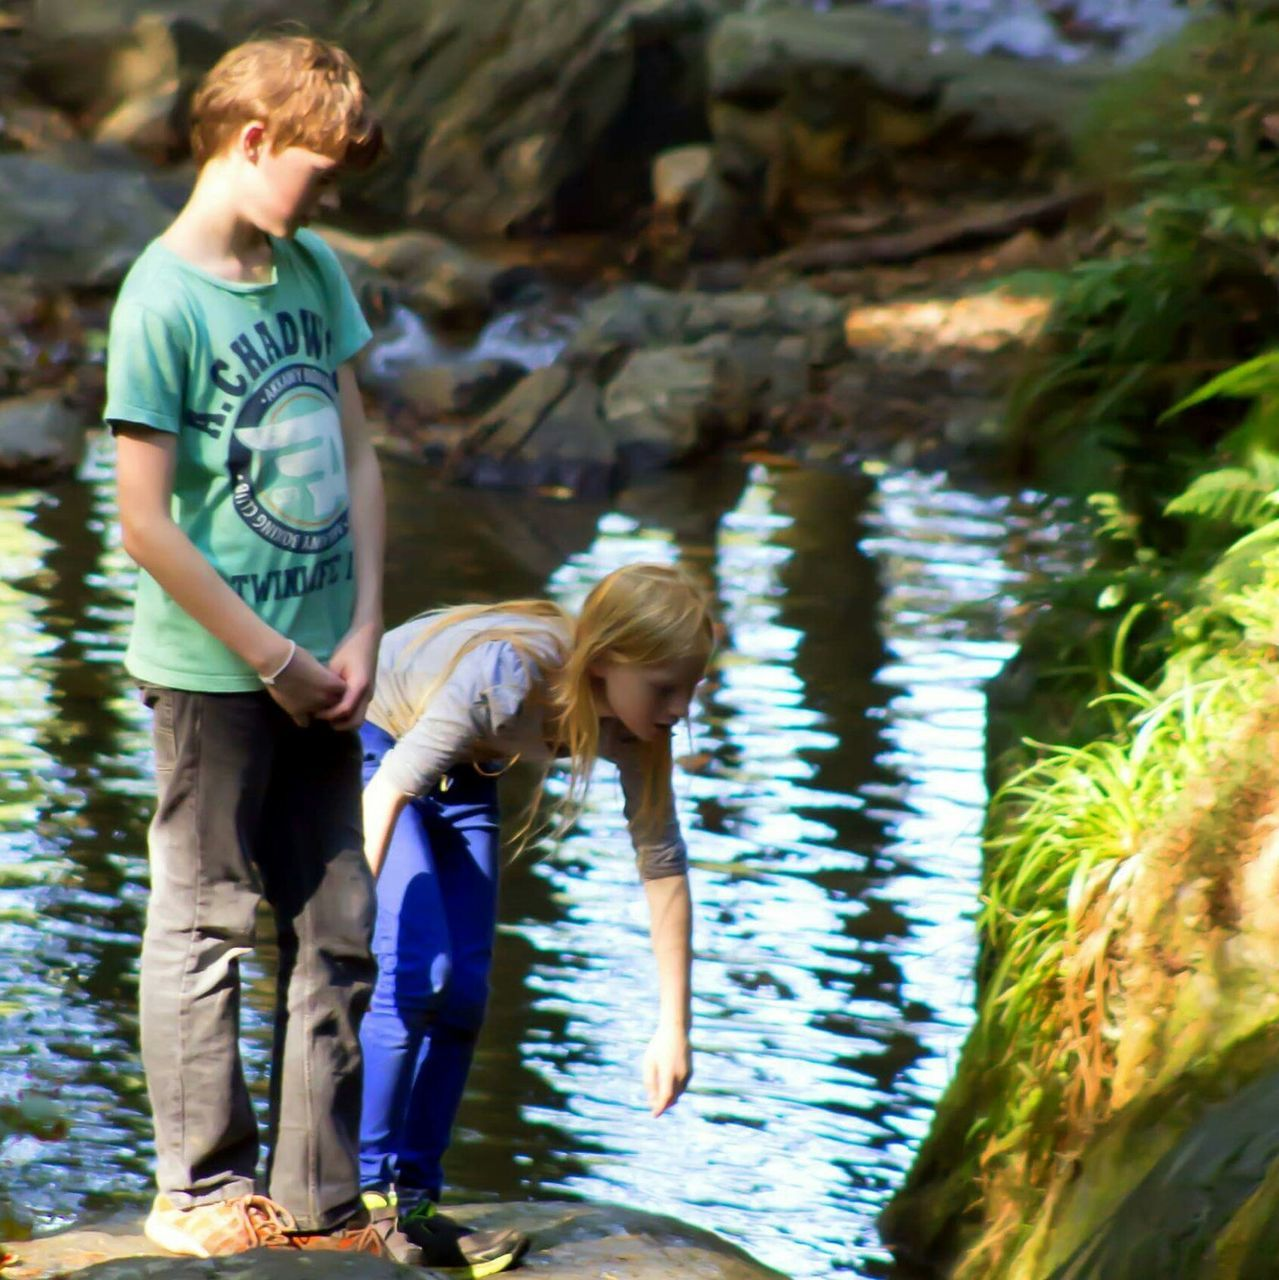 real people, water, childhood, leisure activity, boys, elementary age, casual clothing, full length, day, river, lifestyles, girls, family, standing, focus on foreground, outdoors, ankle deep in water, togetherness, nature, young women, young adult